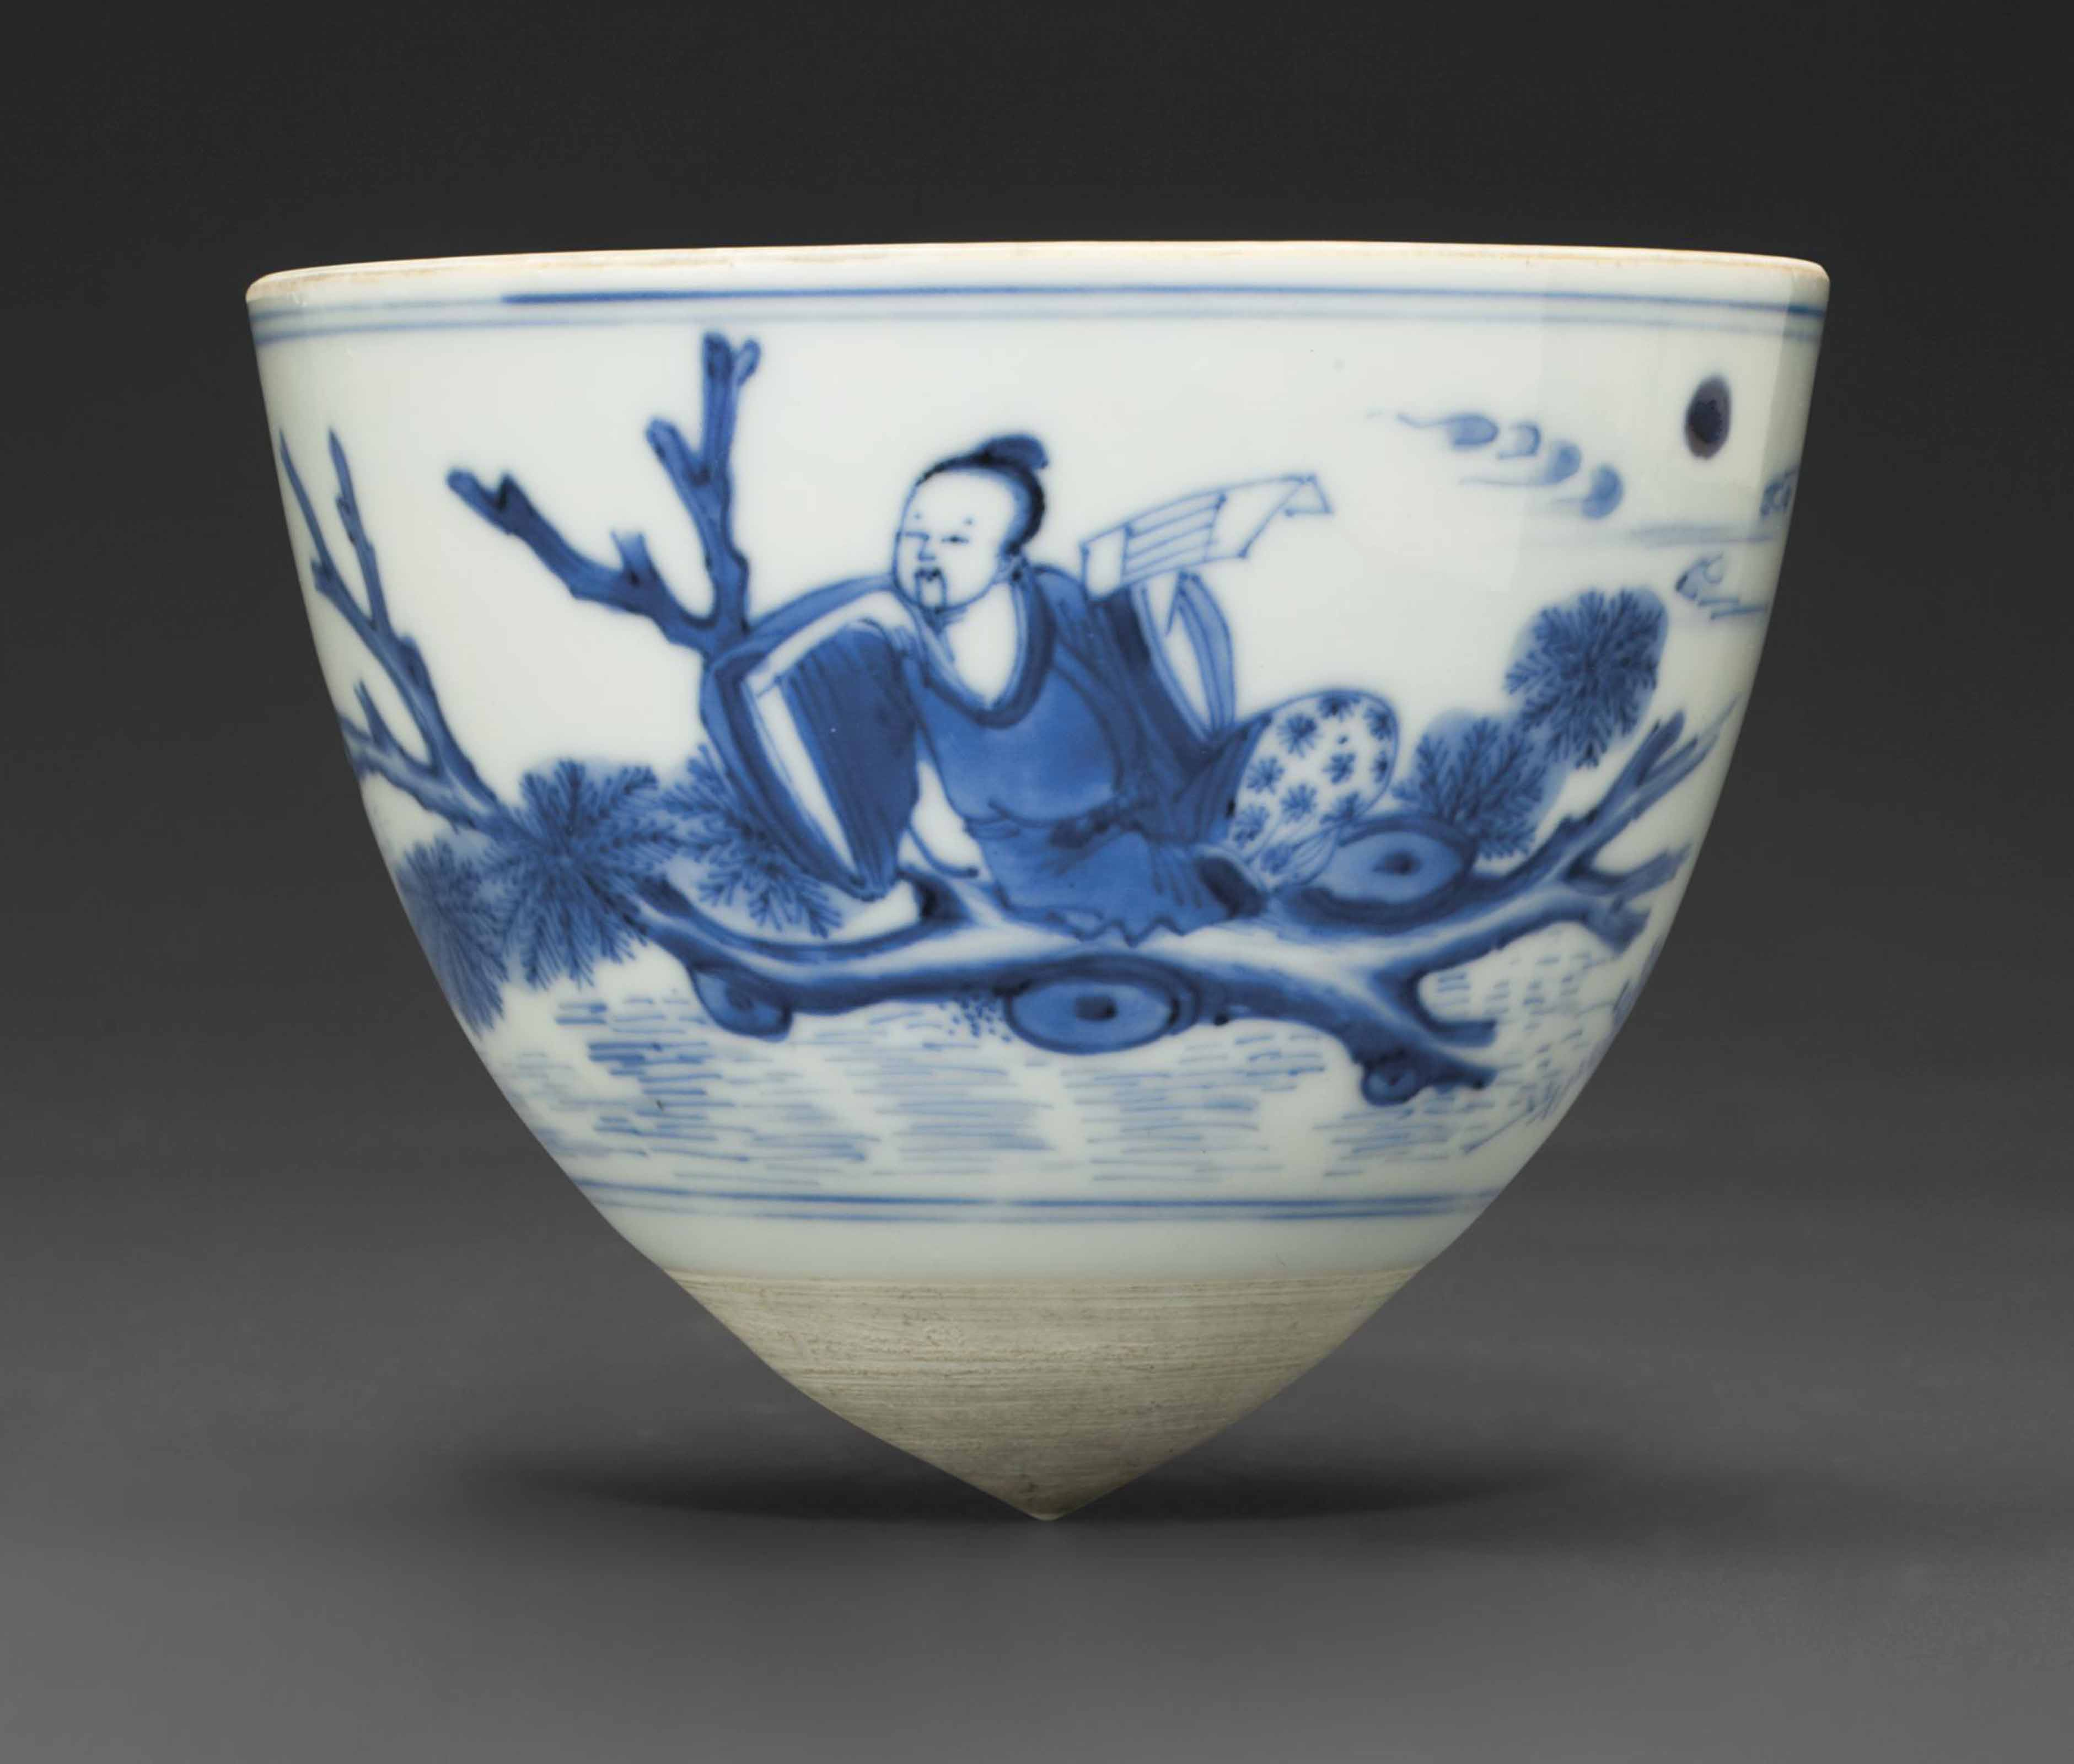 A BLUE AND WHITE CONICAL CUP